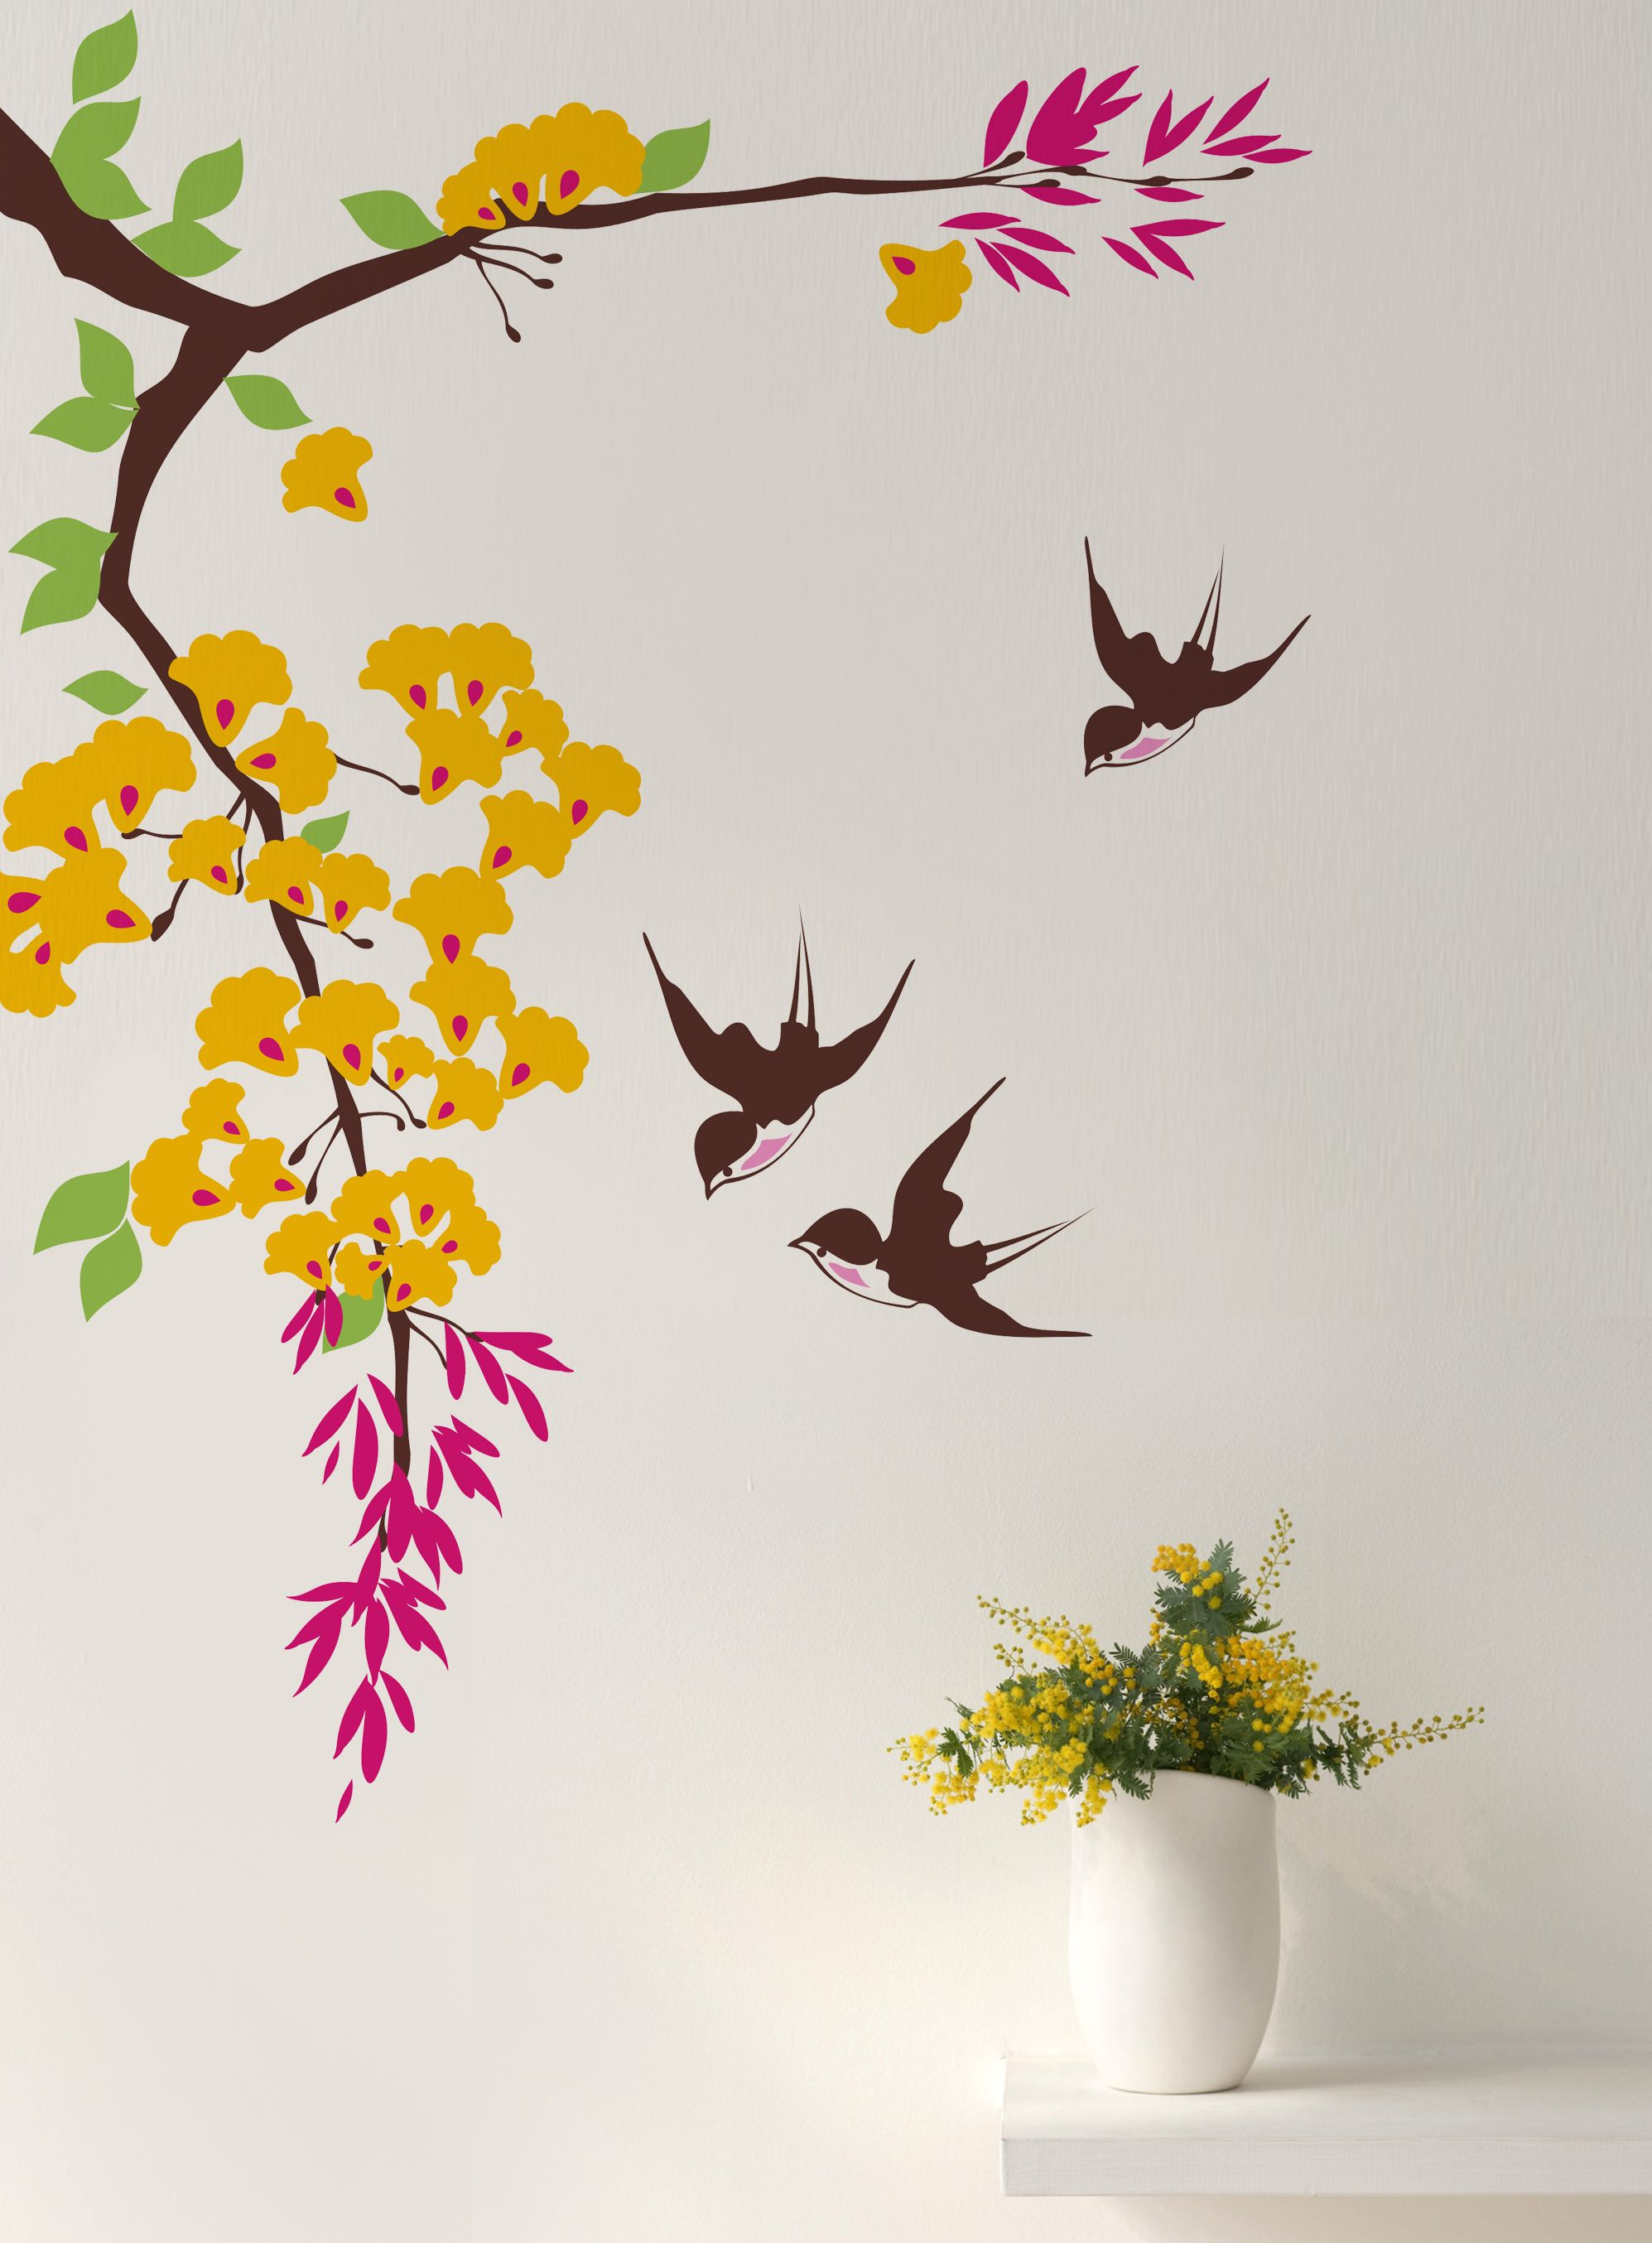 Blossom Branch With Flying Swallow Floral Tree Branch Flowers Branch Decal Https Www Etsy Com Listing 504 Tree Wall Painting Wall Painting Diy Wall Painting